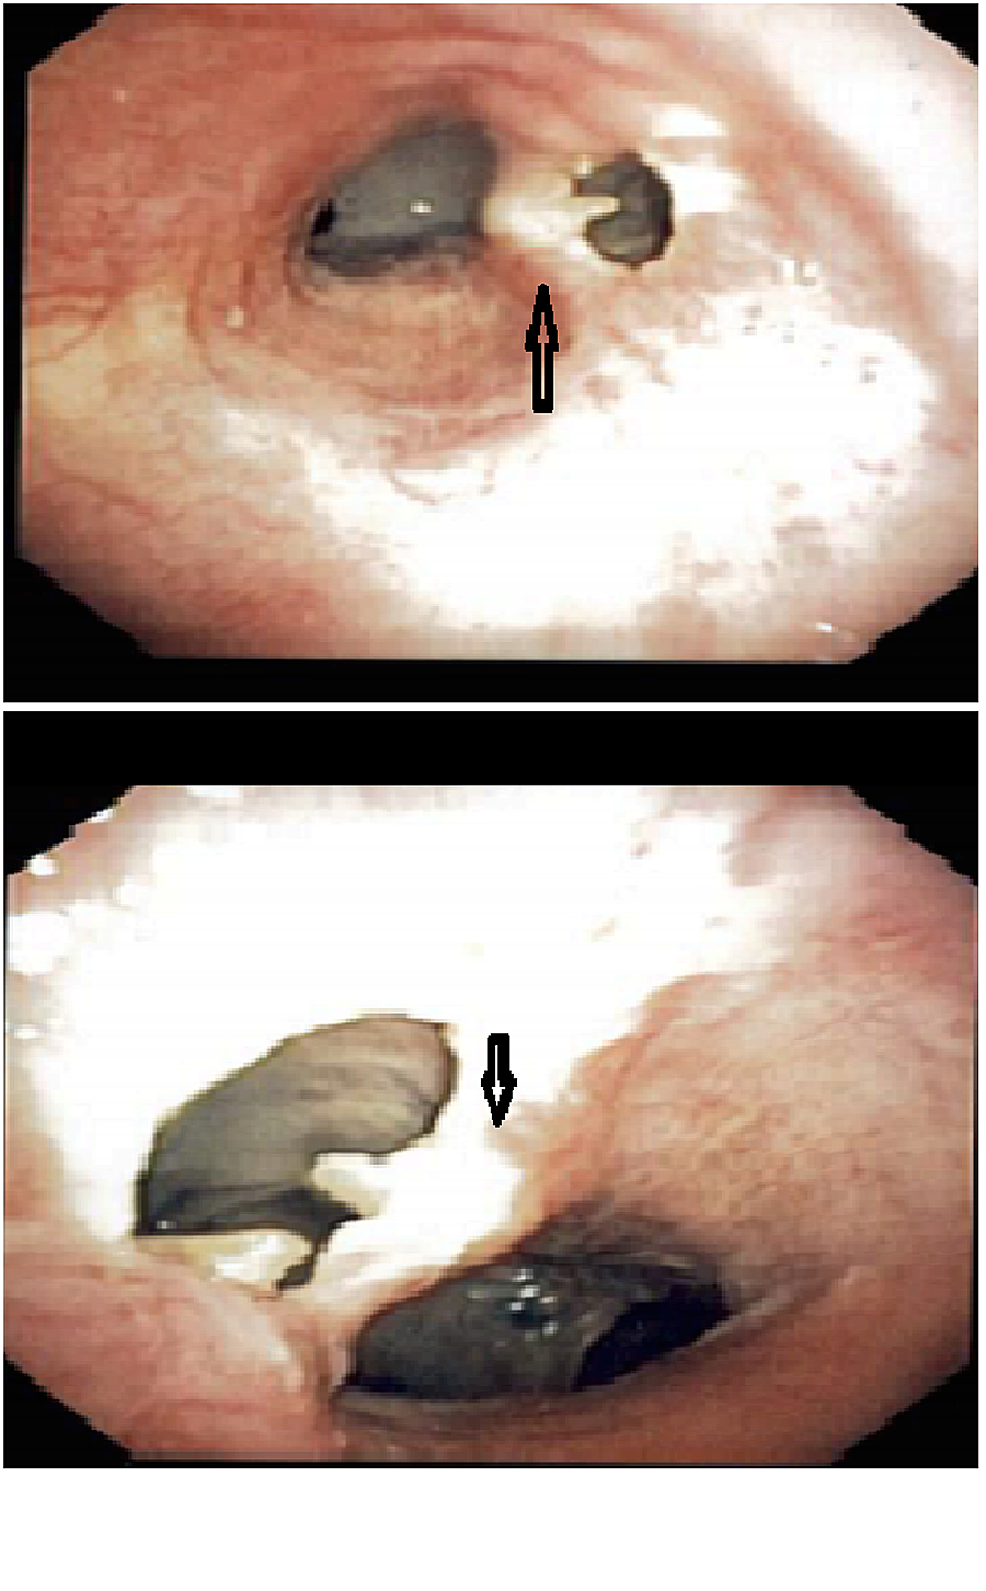 Bronchoscopy-images-showing-the-fistula.